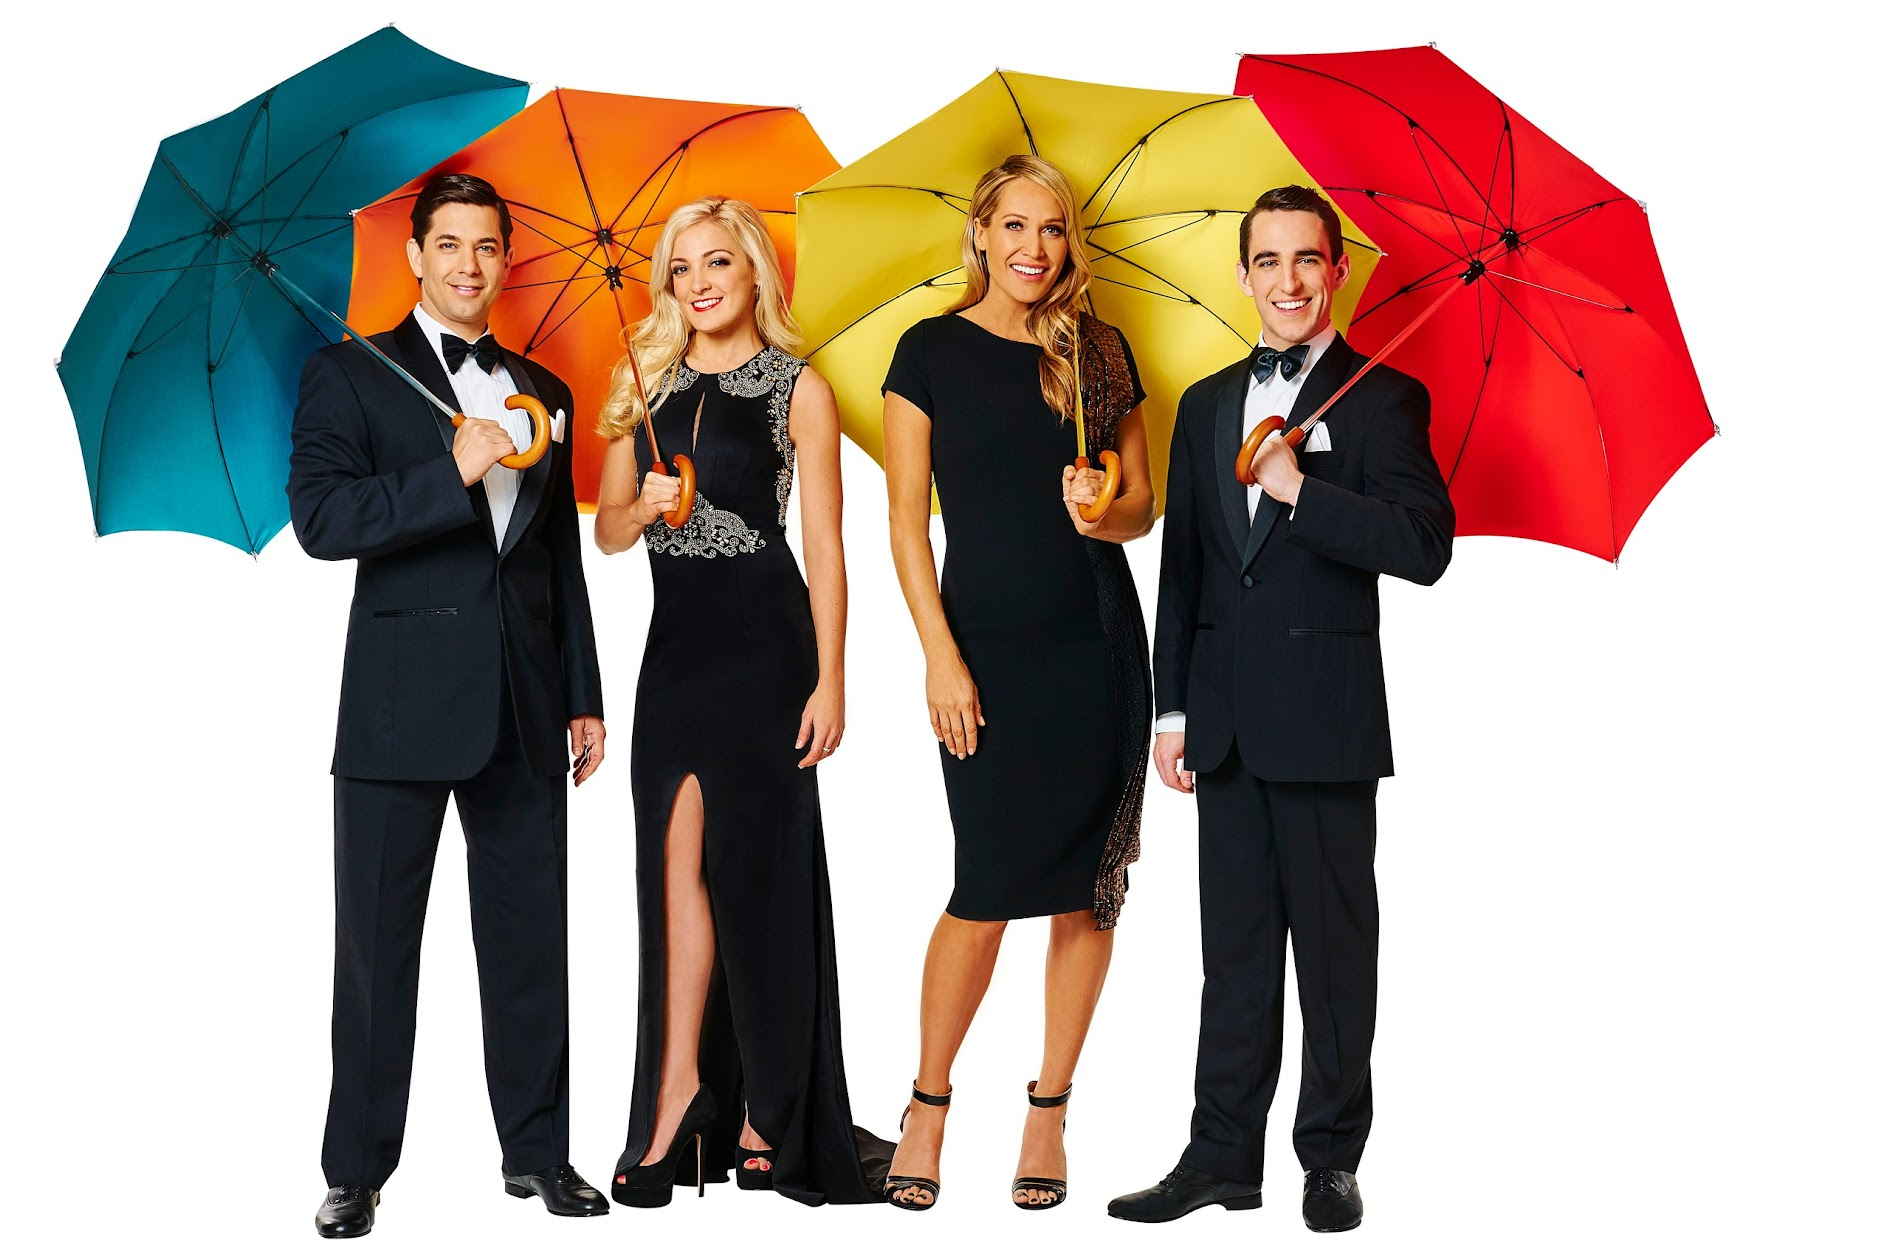 Singin In The Rain Cast: Adam Garcia, Gretel Scarlett, Erika Heynatz and Jack Chambers; Photo Credits: Singin In The Rain Media